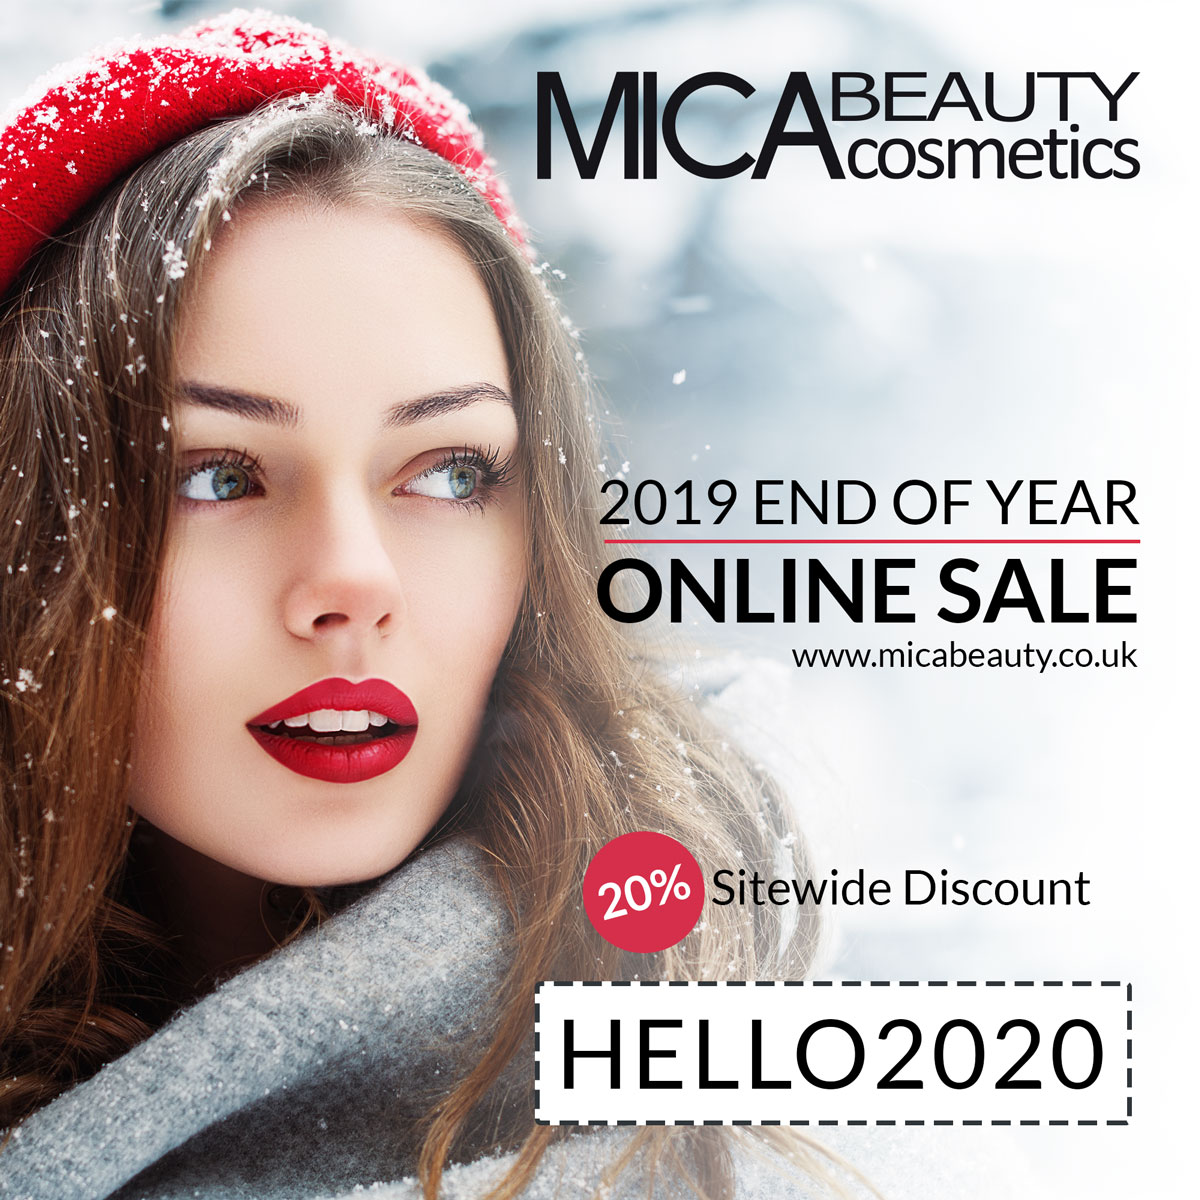 End of Year 2019 Online Sale